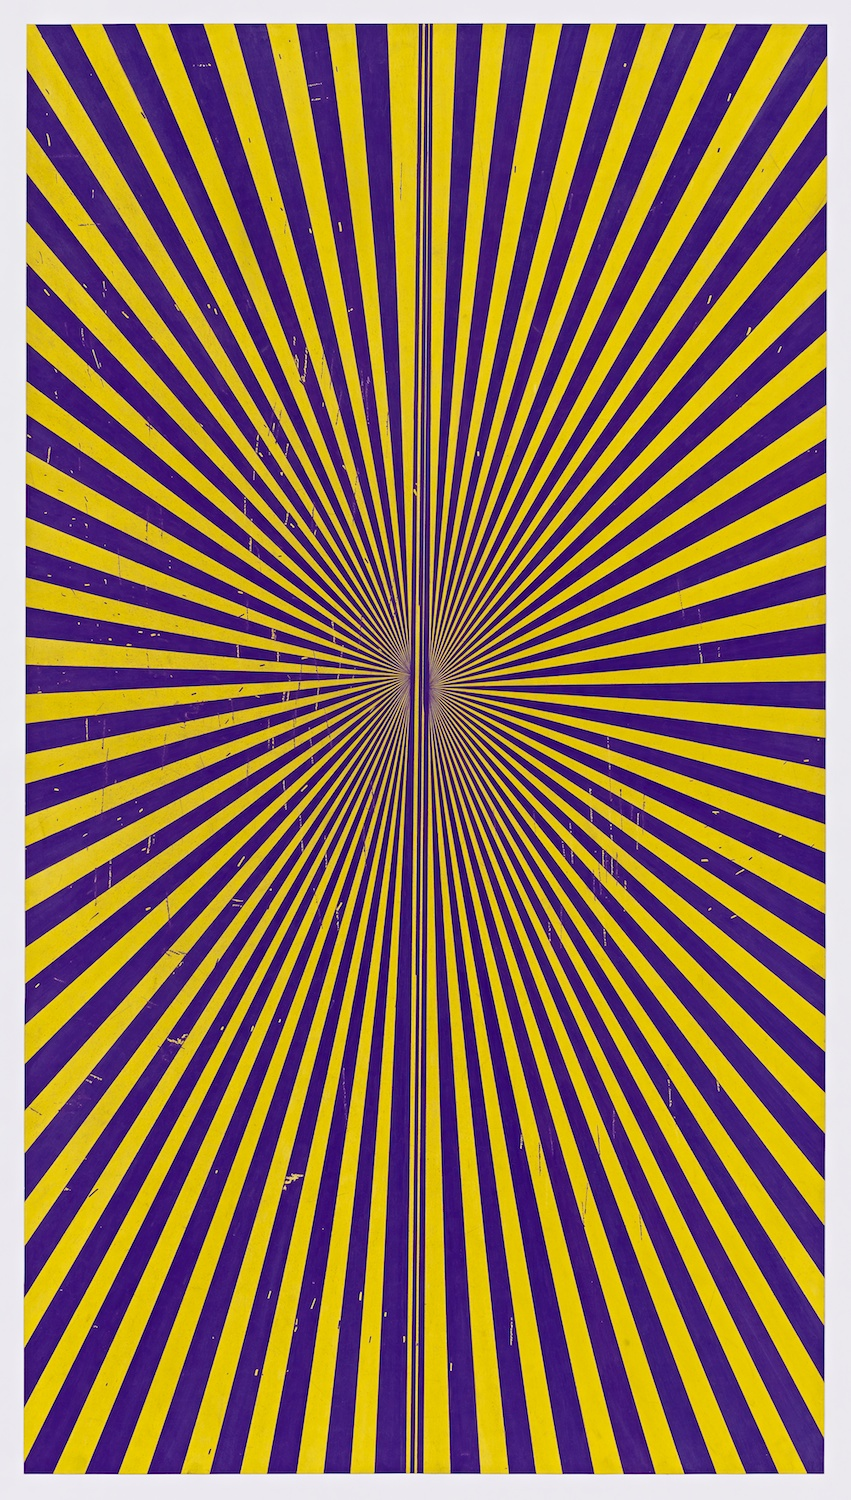 Mark Grotjahn  Untitled (Violet and Canary Yellow Butterfly 45.05)  2013 Color pencil on paper 76h x 42w in MG45.05